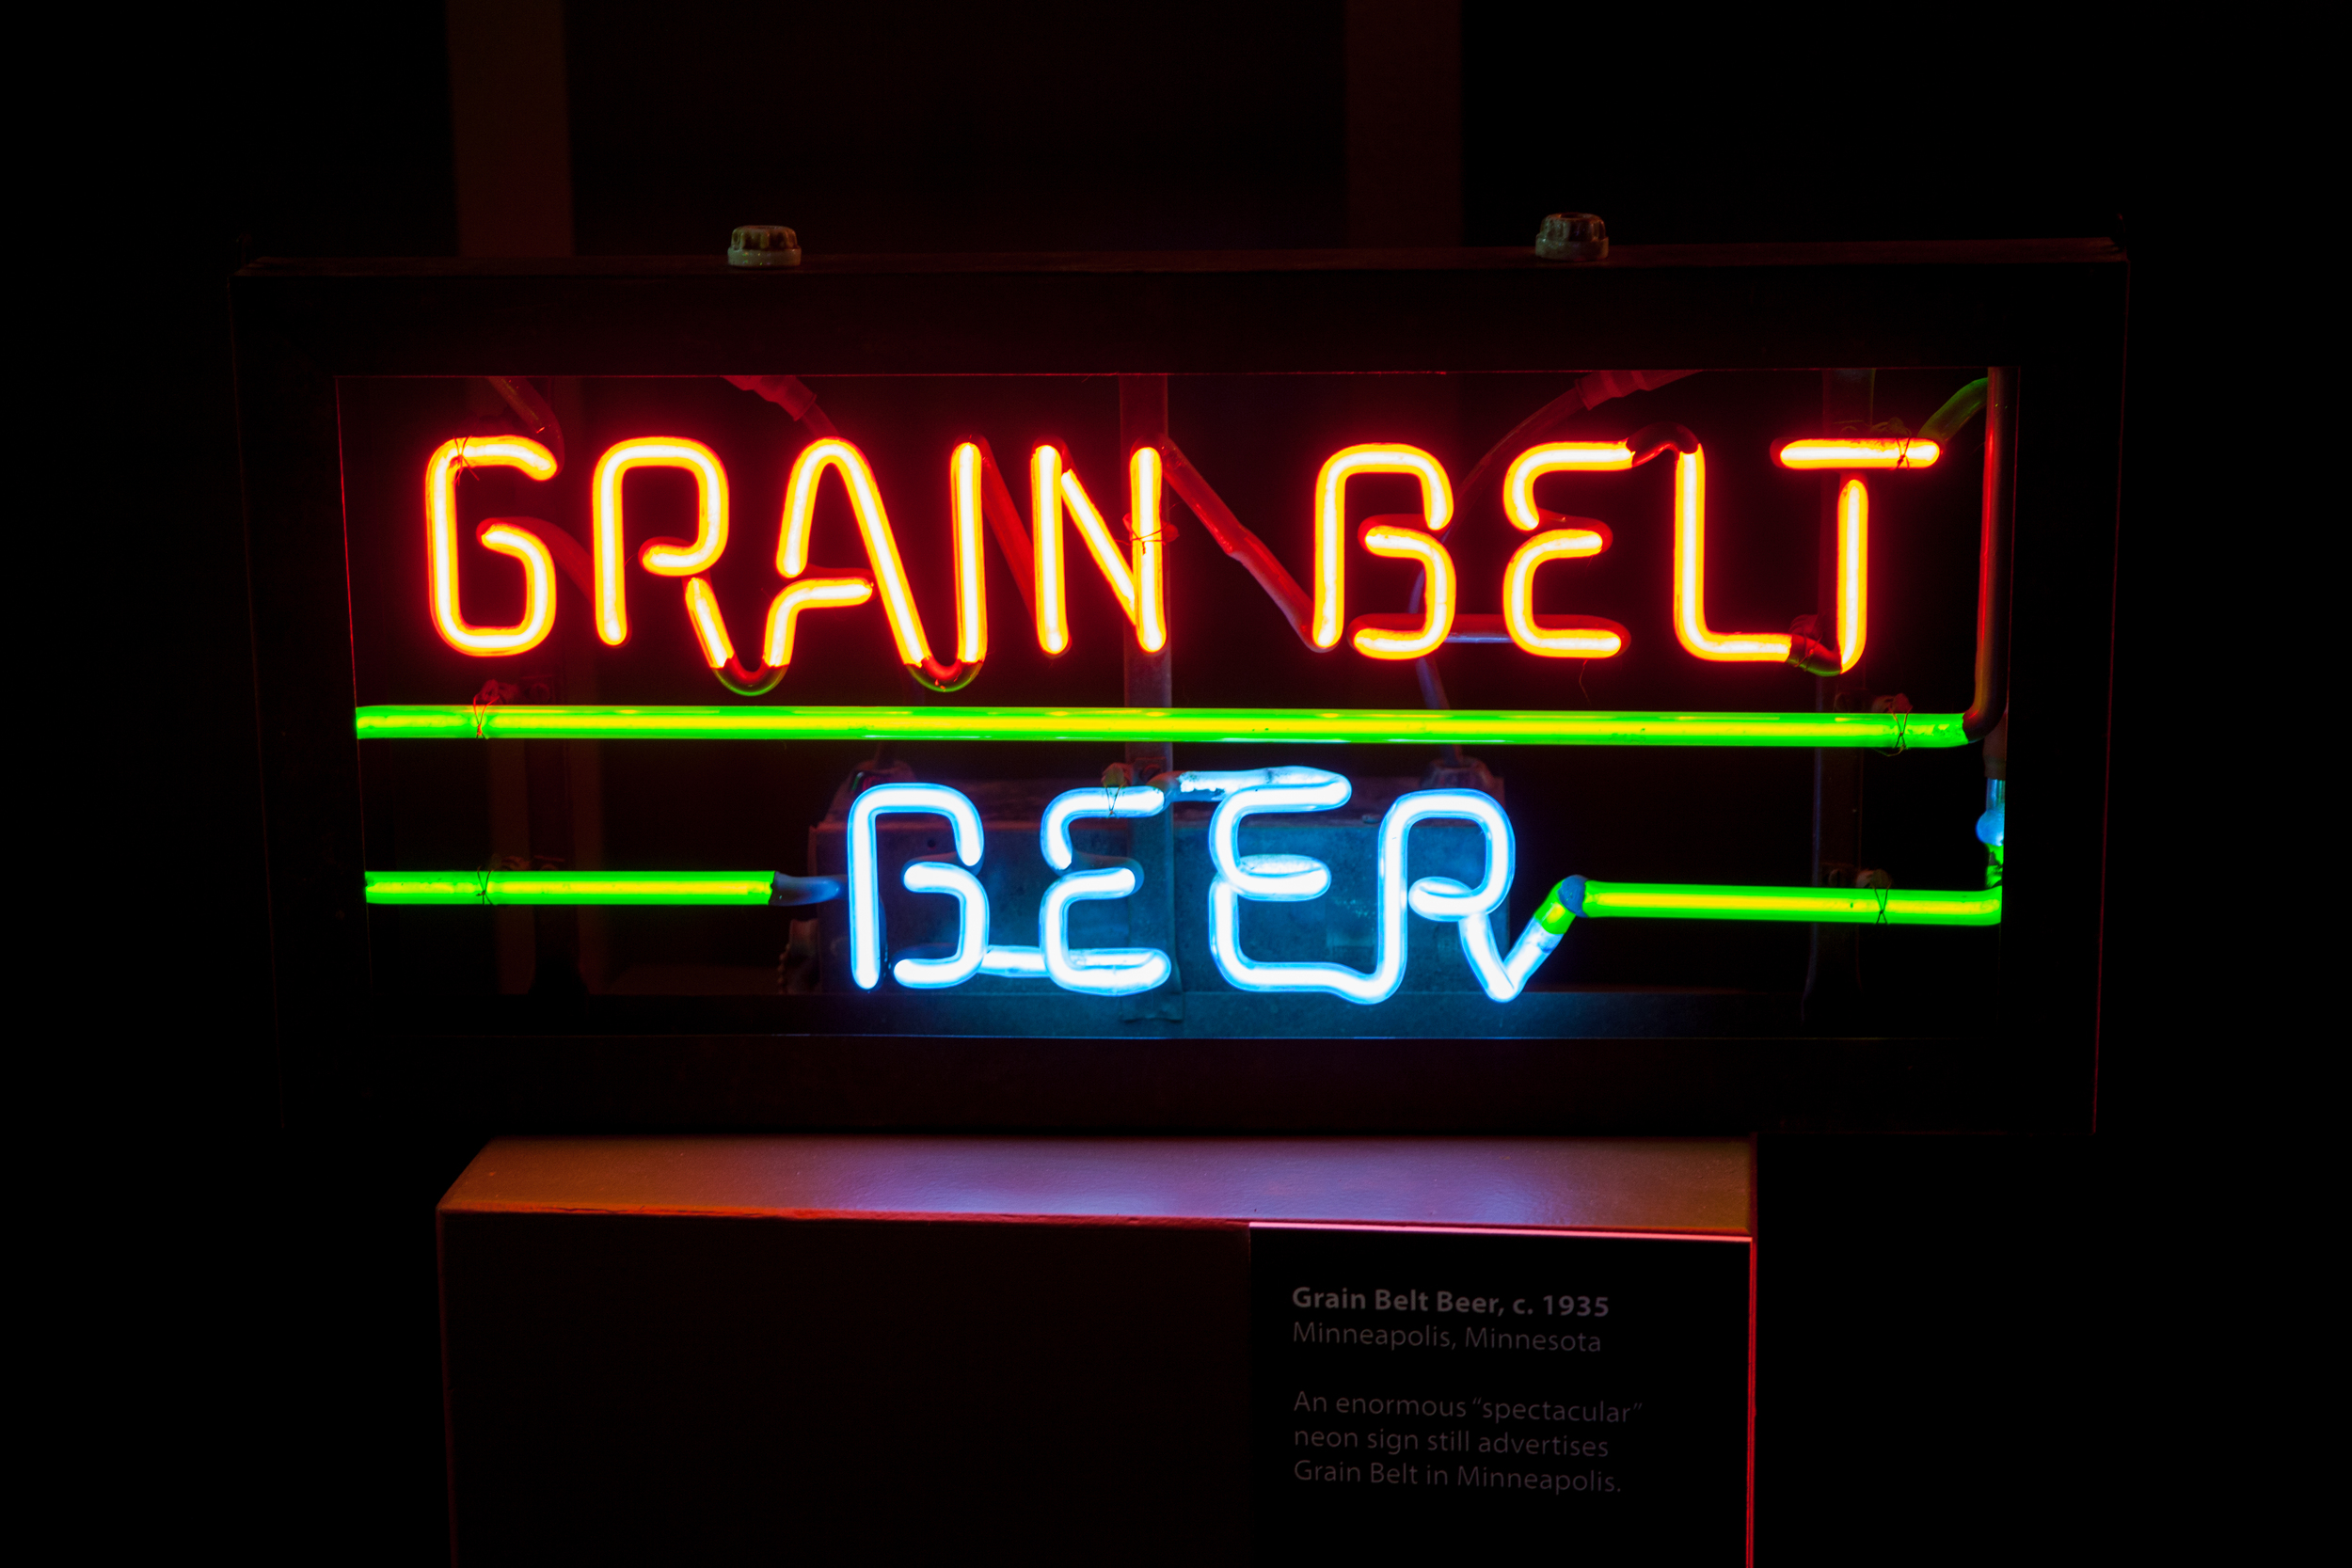 Grain Belt Neon Sign